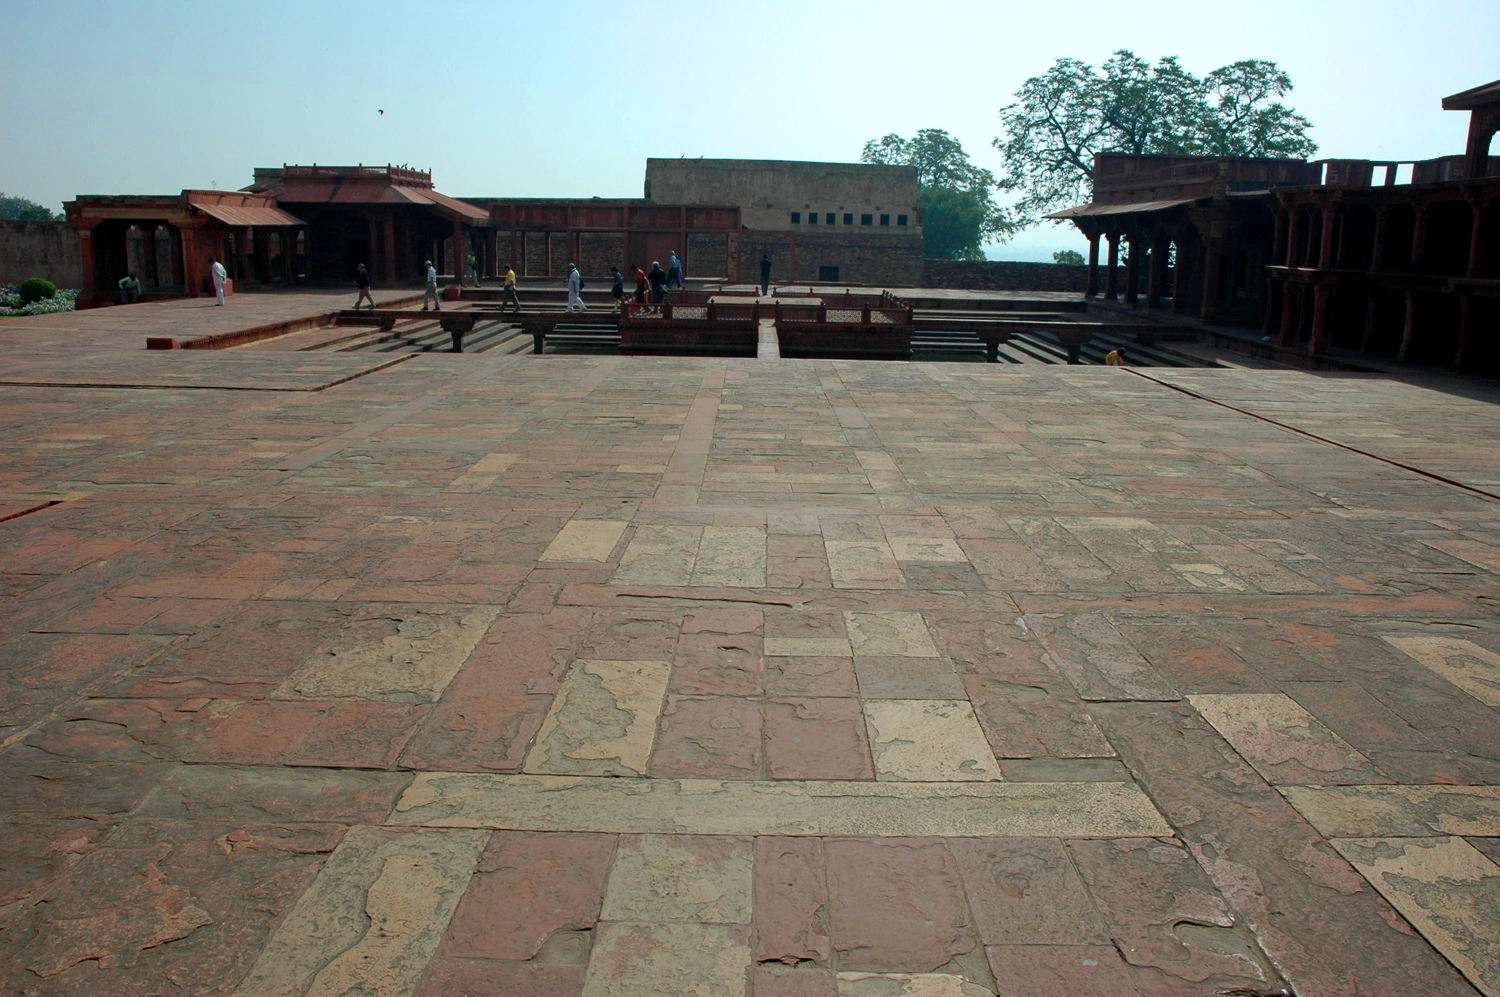 Hard-surfaced maidan leading to the pool at Anup Talao, Fatehpur Sikri, Uttar Pradesh, 18 March, 2007, photograph by Gordon Brent Ingram